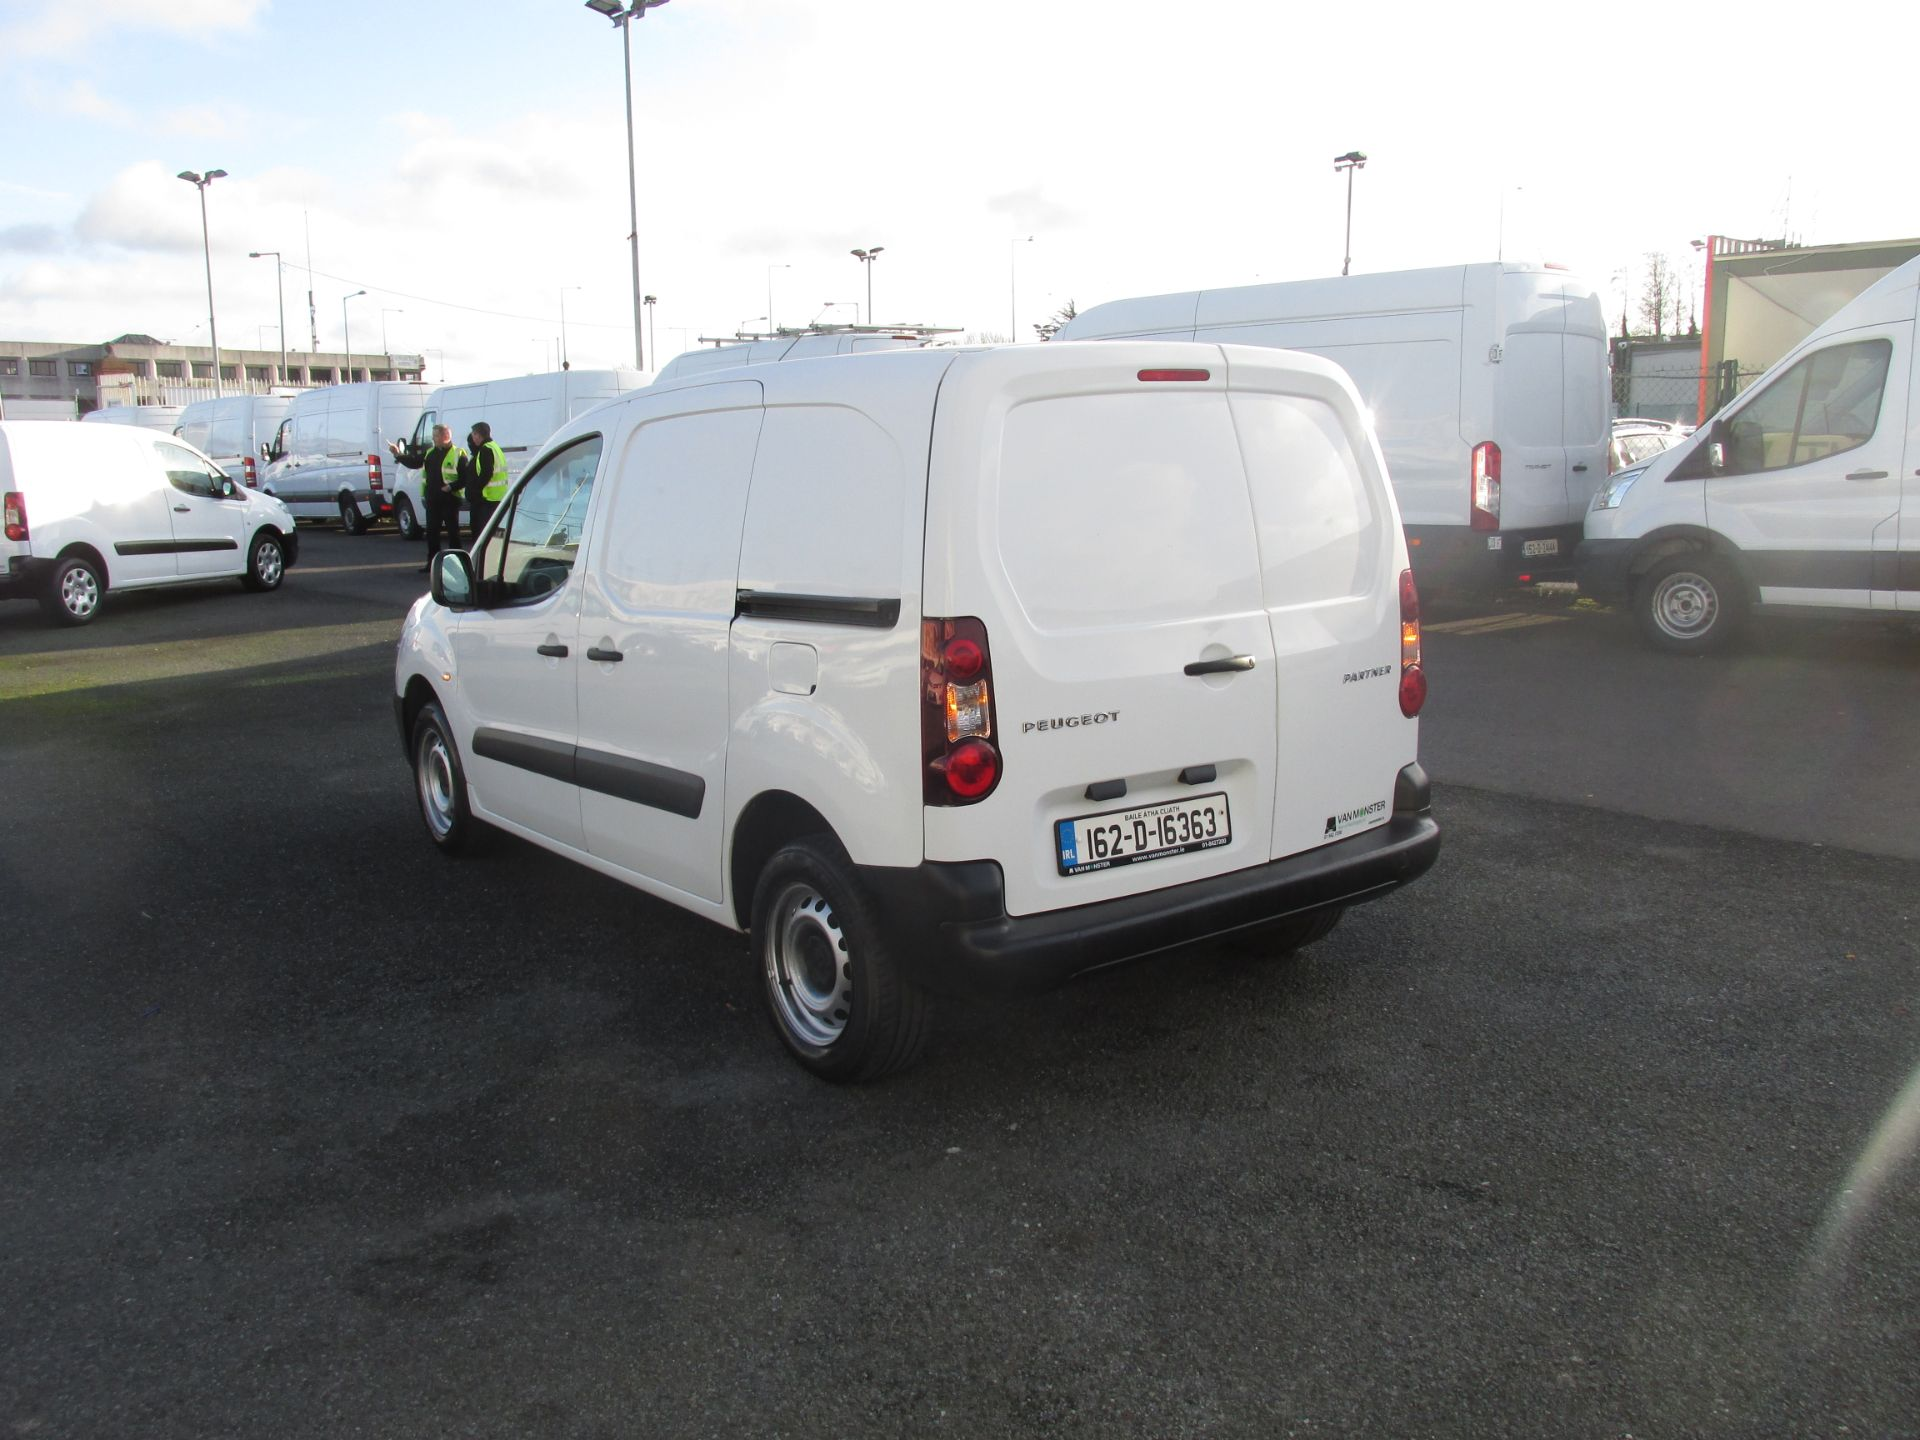 2016 Peugeot Partner #150 VANS TO VIEW IN SANTRY # (162D16363) Image 5